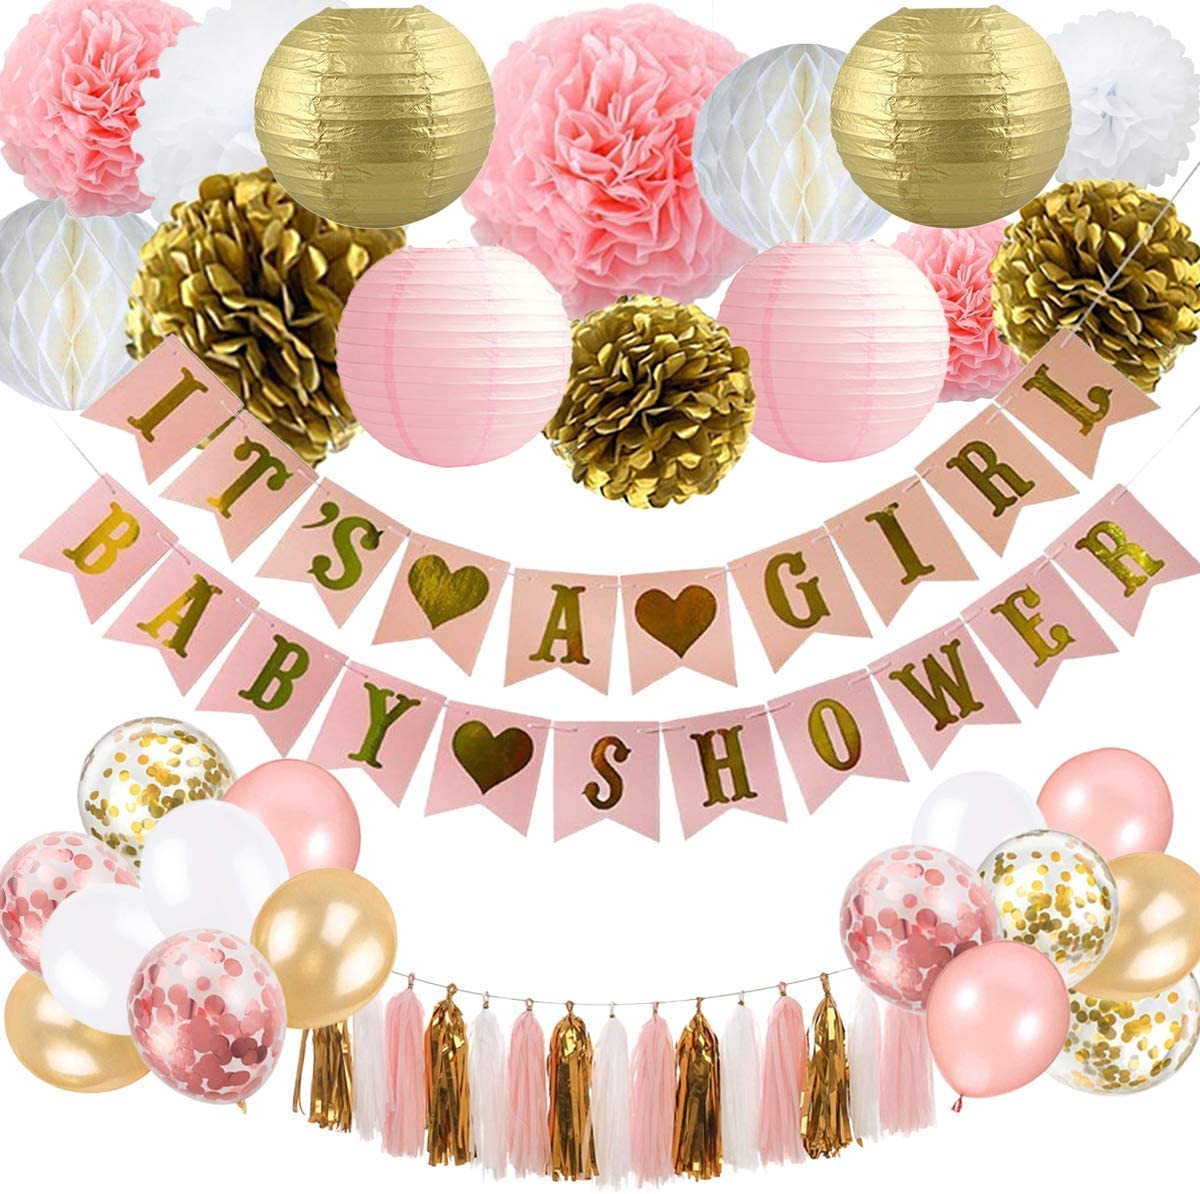 Party Plane Baby Shower Decorations for Girl Pink and Gold Baby Shower Favors, It's a Girl Banner, Paper Lanterns, Honeycomb, Tassels, Pom Poms, Nursery Room Decor